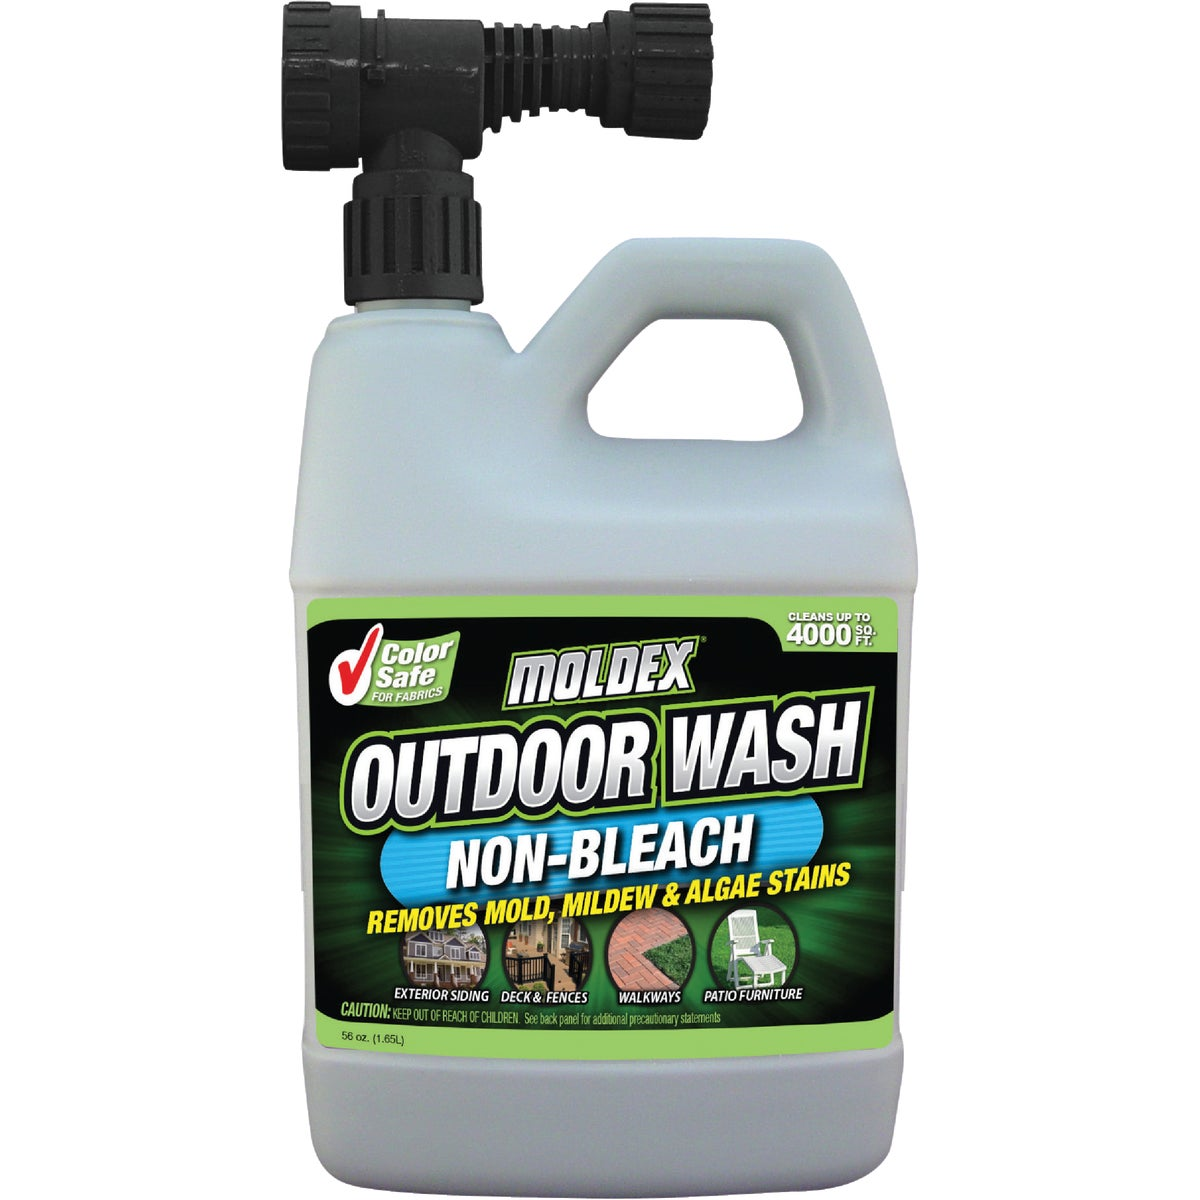 MLDX HOSE STAIN REMOVER